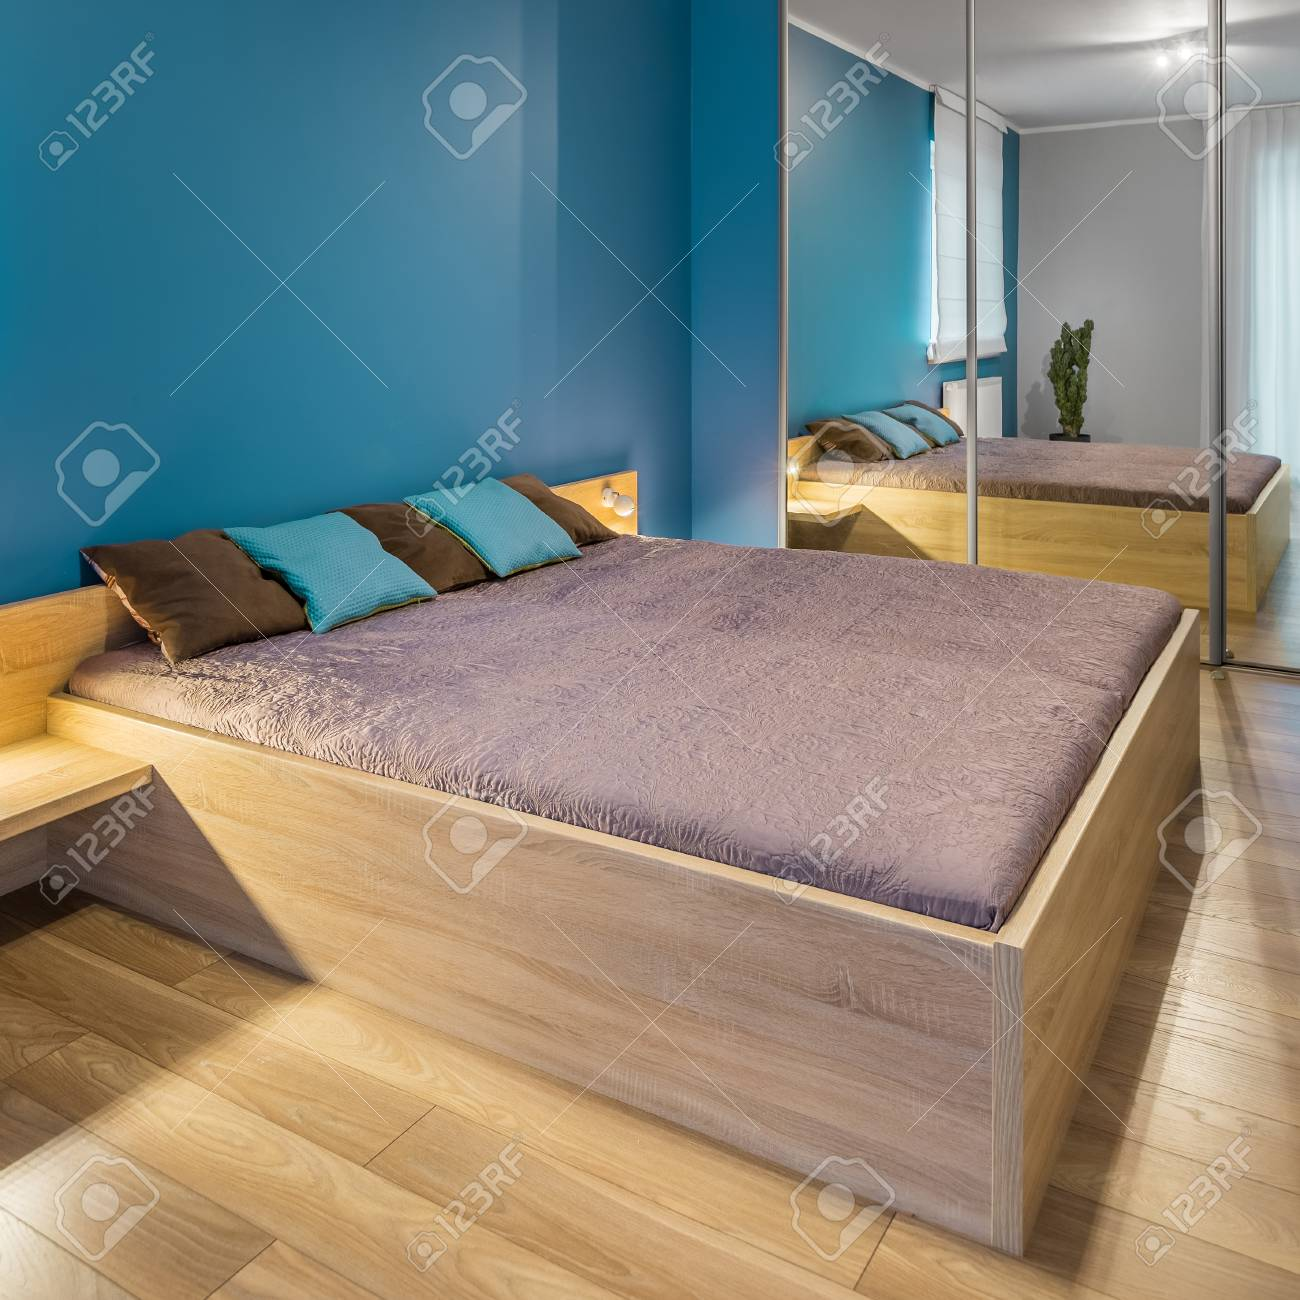 Spacious Blue Bedroom With Big Wooden Bed And Mirrored Wardrobe Stock Photo Picture And Royalty Free Image Image 66148857